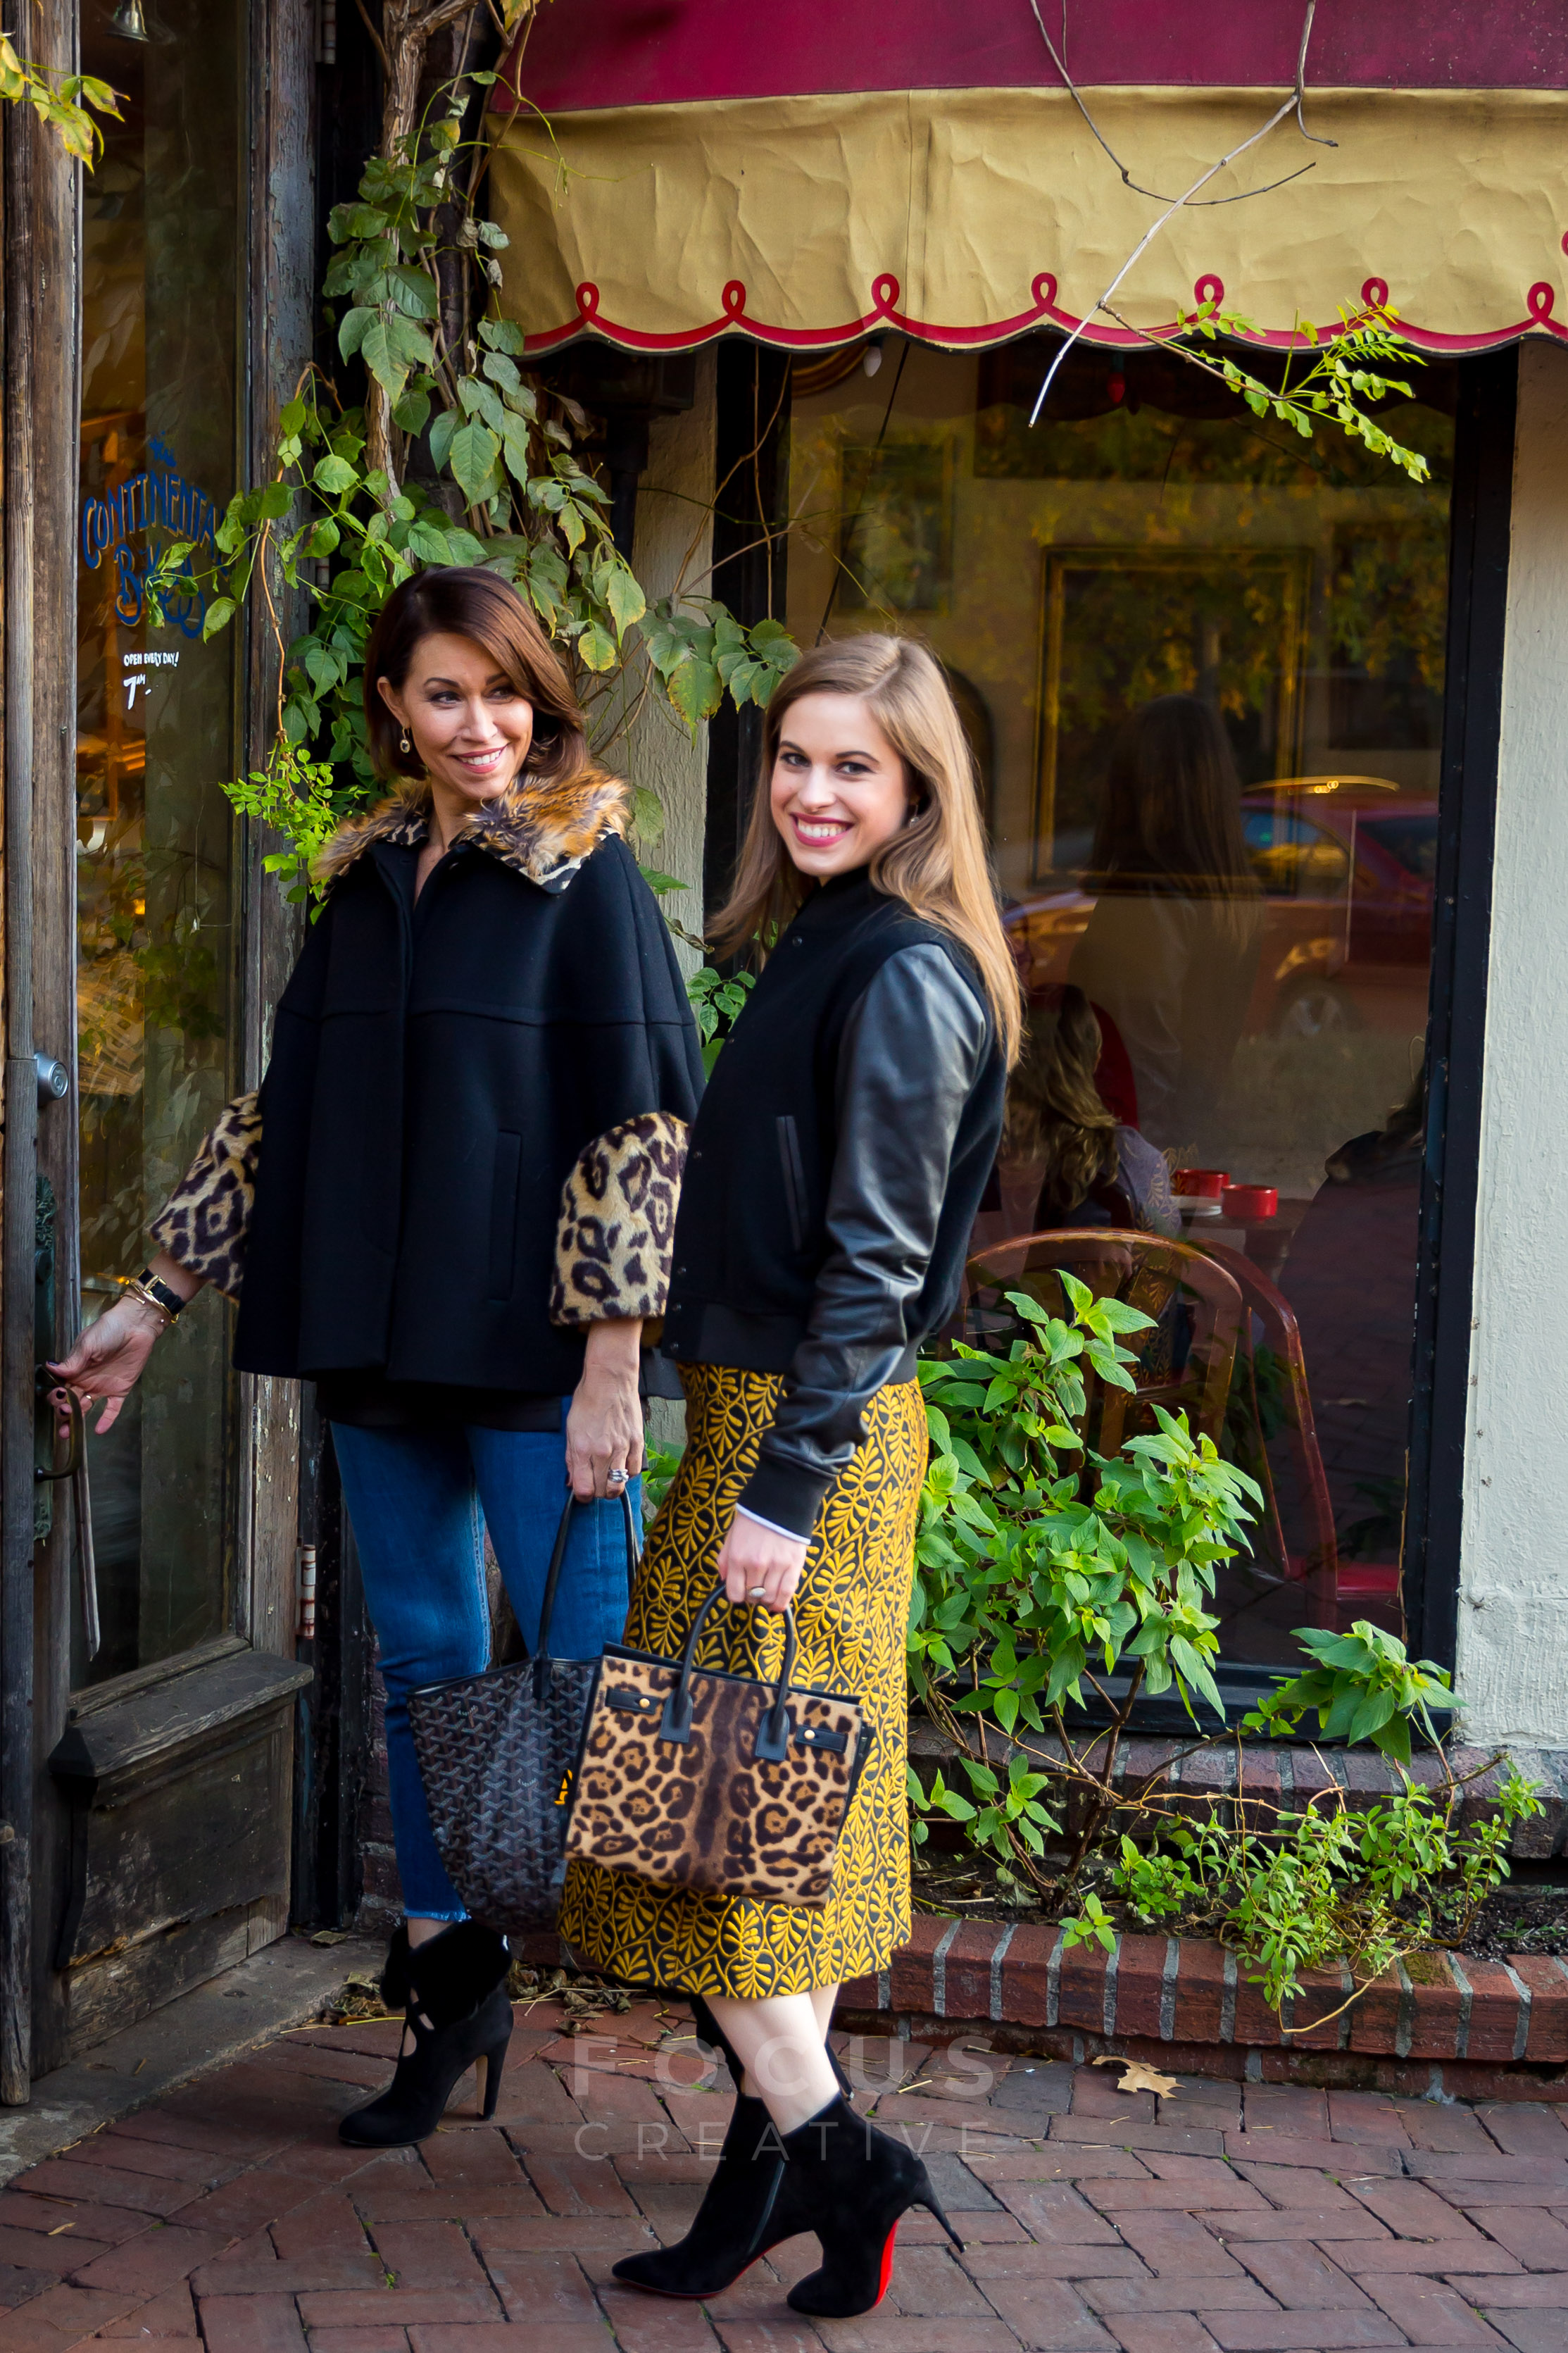 Mother-daughter team, Alison Bruhn and Delia Folk, visit the Continental Bakery like they used to every morning before school when Delia was a little girl.